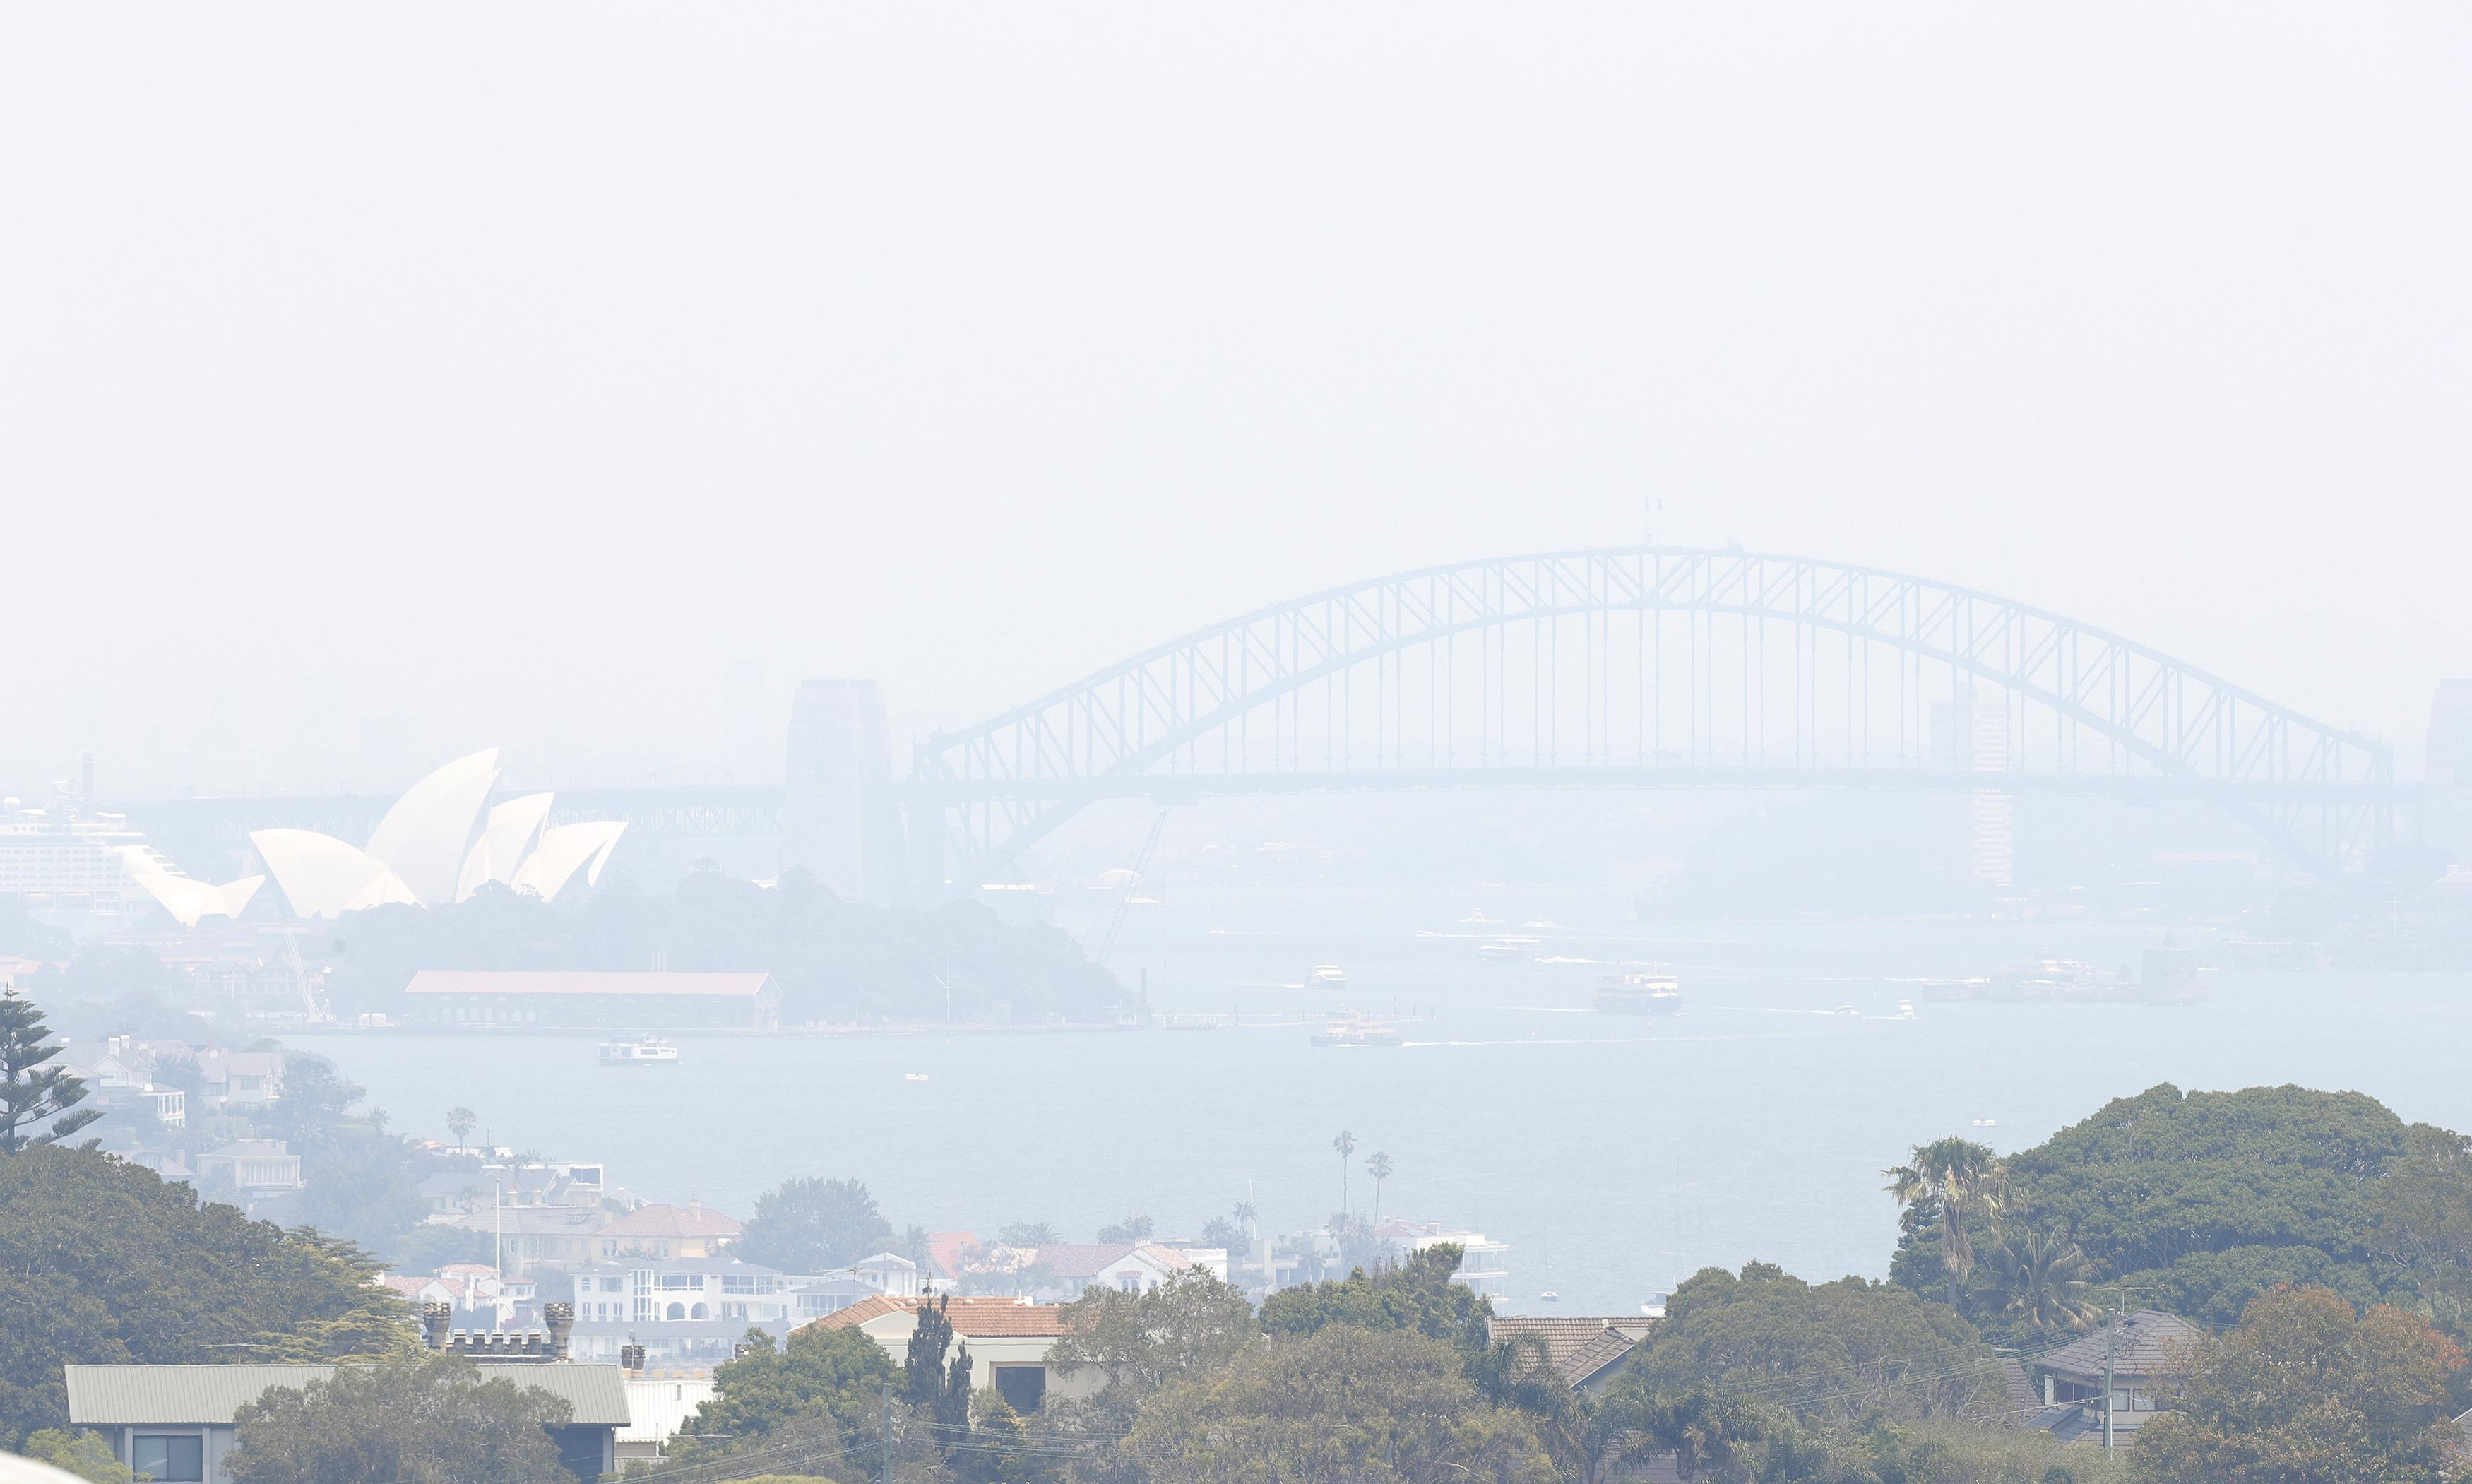 From disbelief to dread: the dismal new routine of life in Sydney's smoke haze